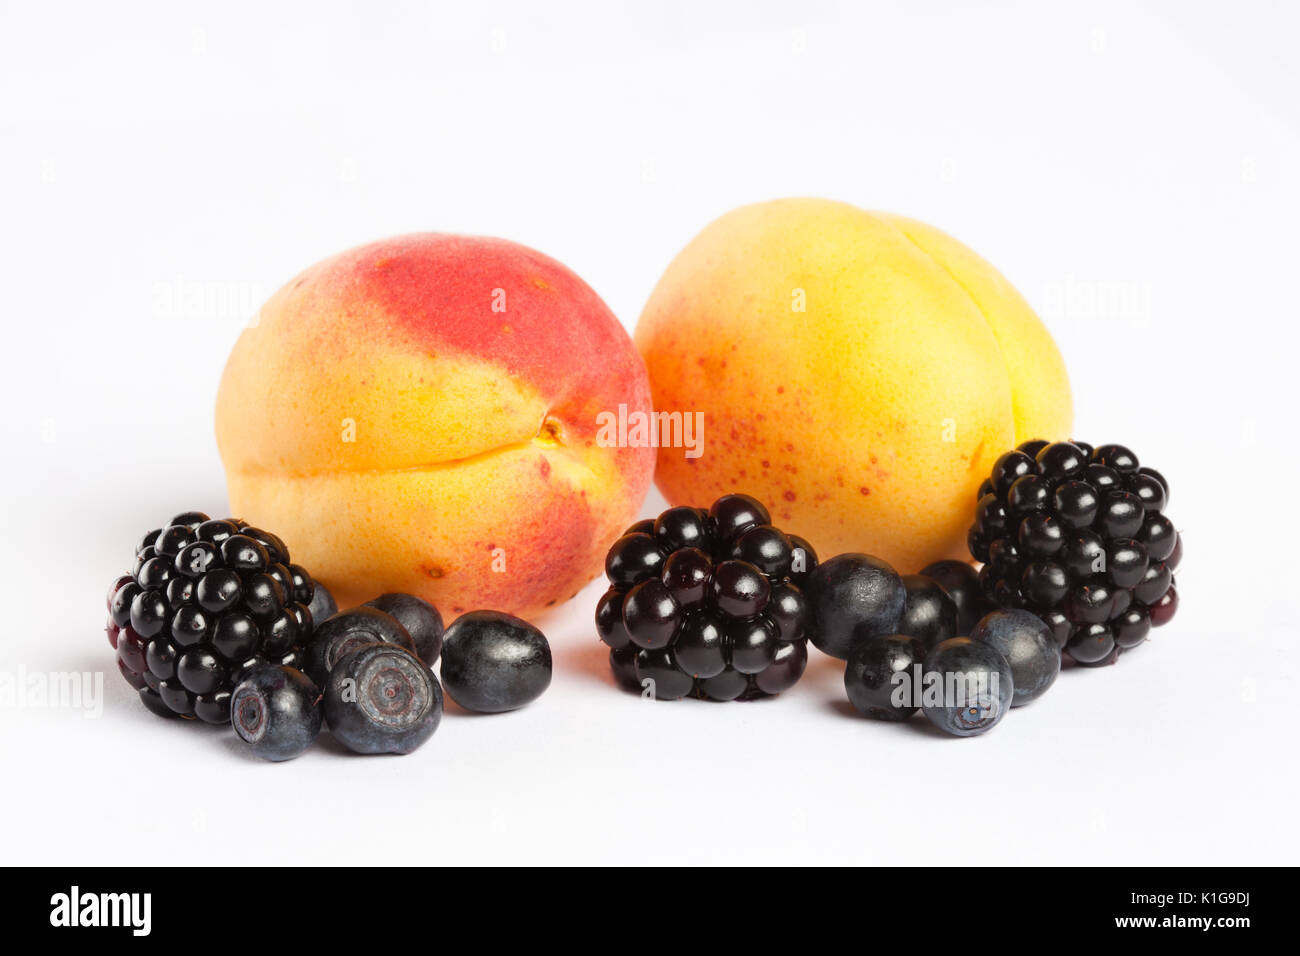 Blueberry, apricot and blackberry - Stock Image